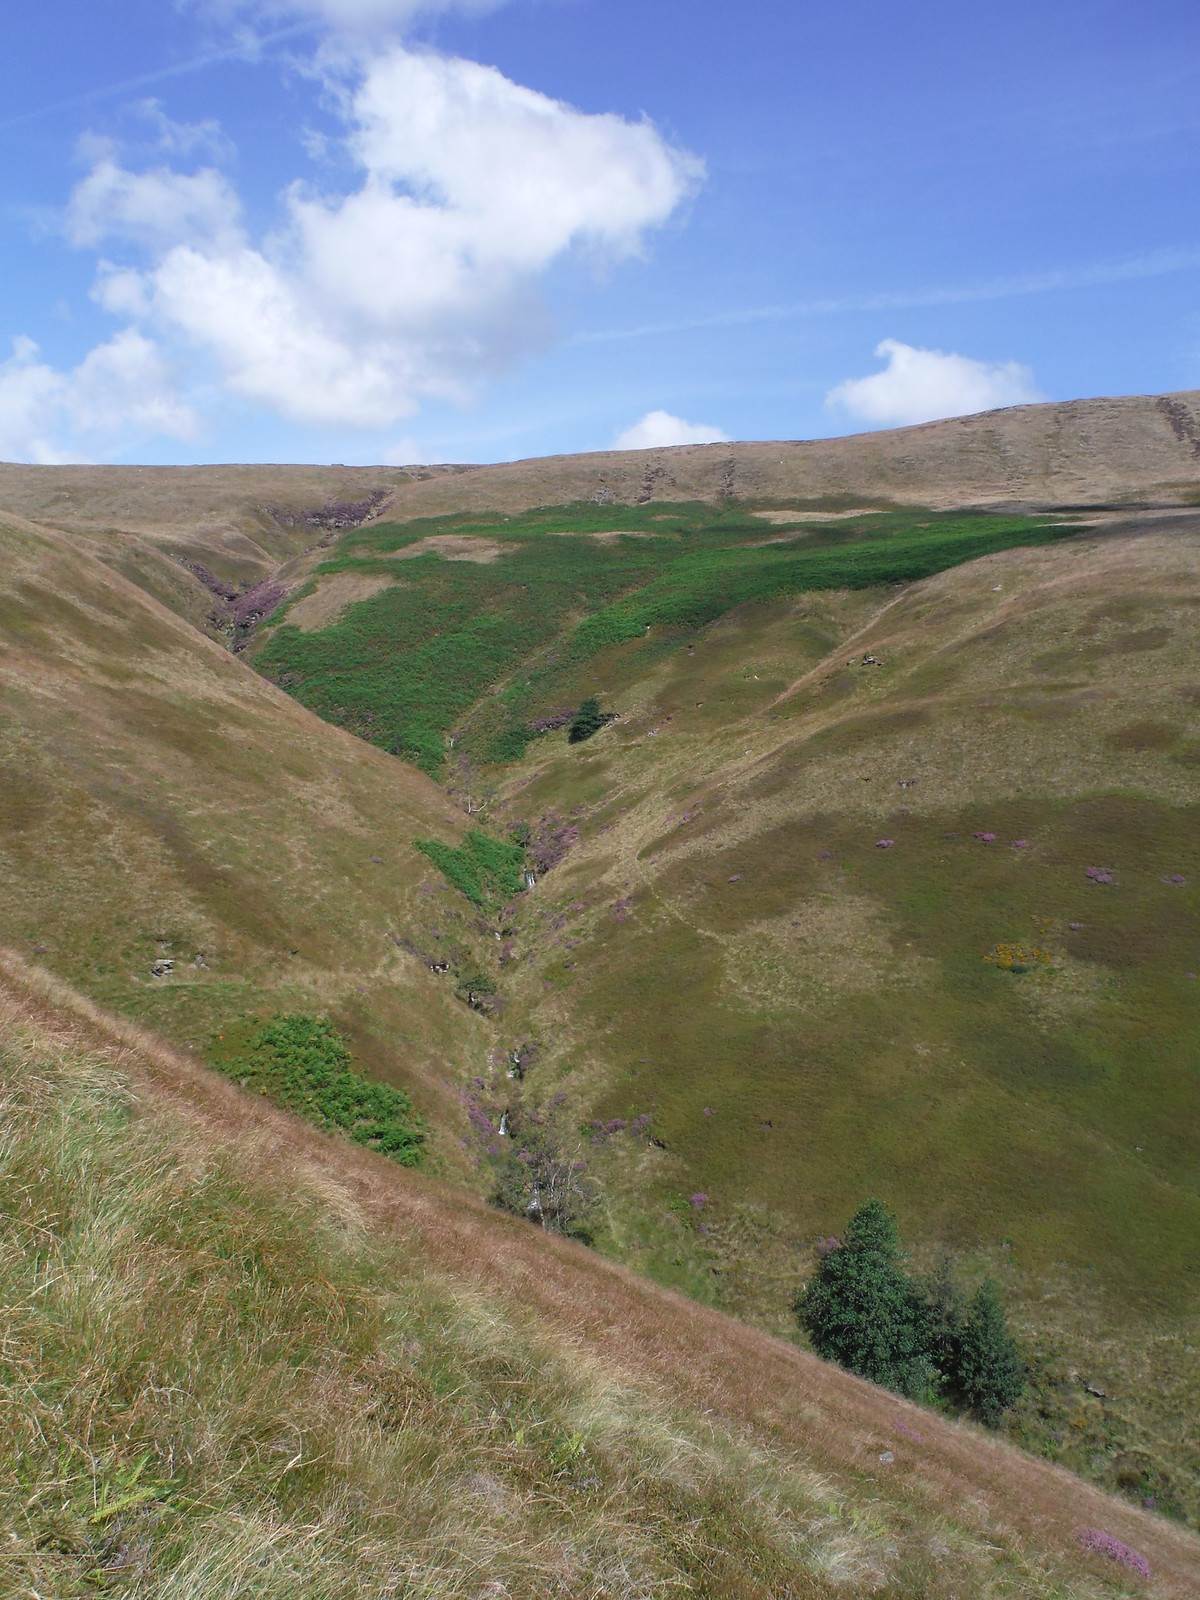 The Cascading River Noe, The Cloughs, Edale Head SWC Walk 303 - Edale Circular (via Kinder Scout and Mam Tor)